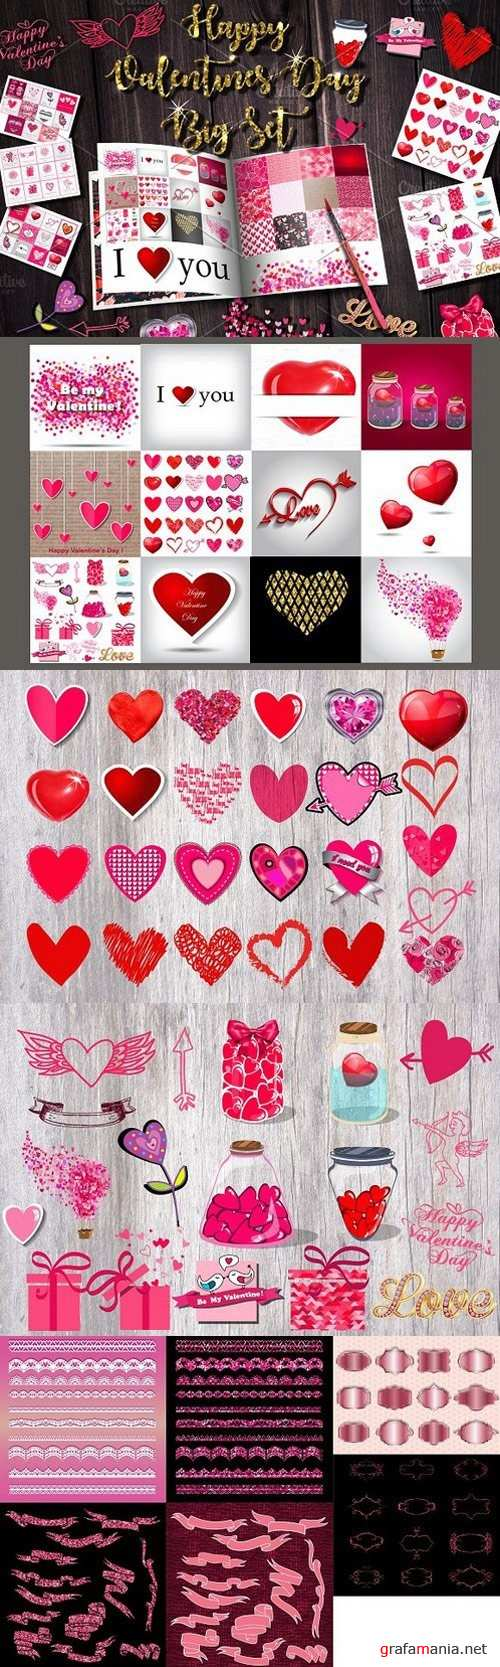 Happy Valentine's Day Big Set 1223954